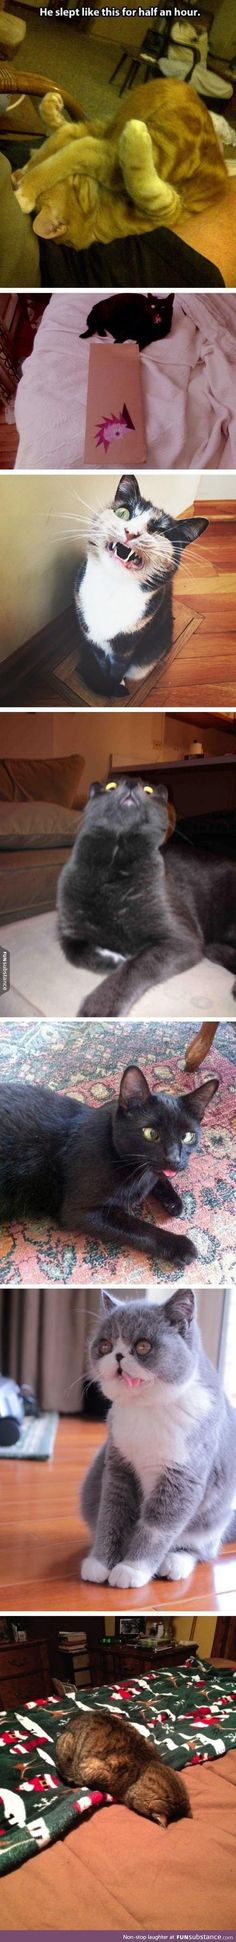 These cat pics made my day